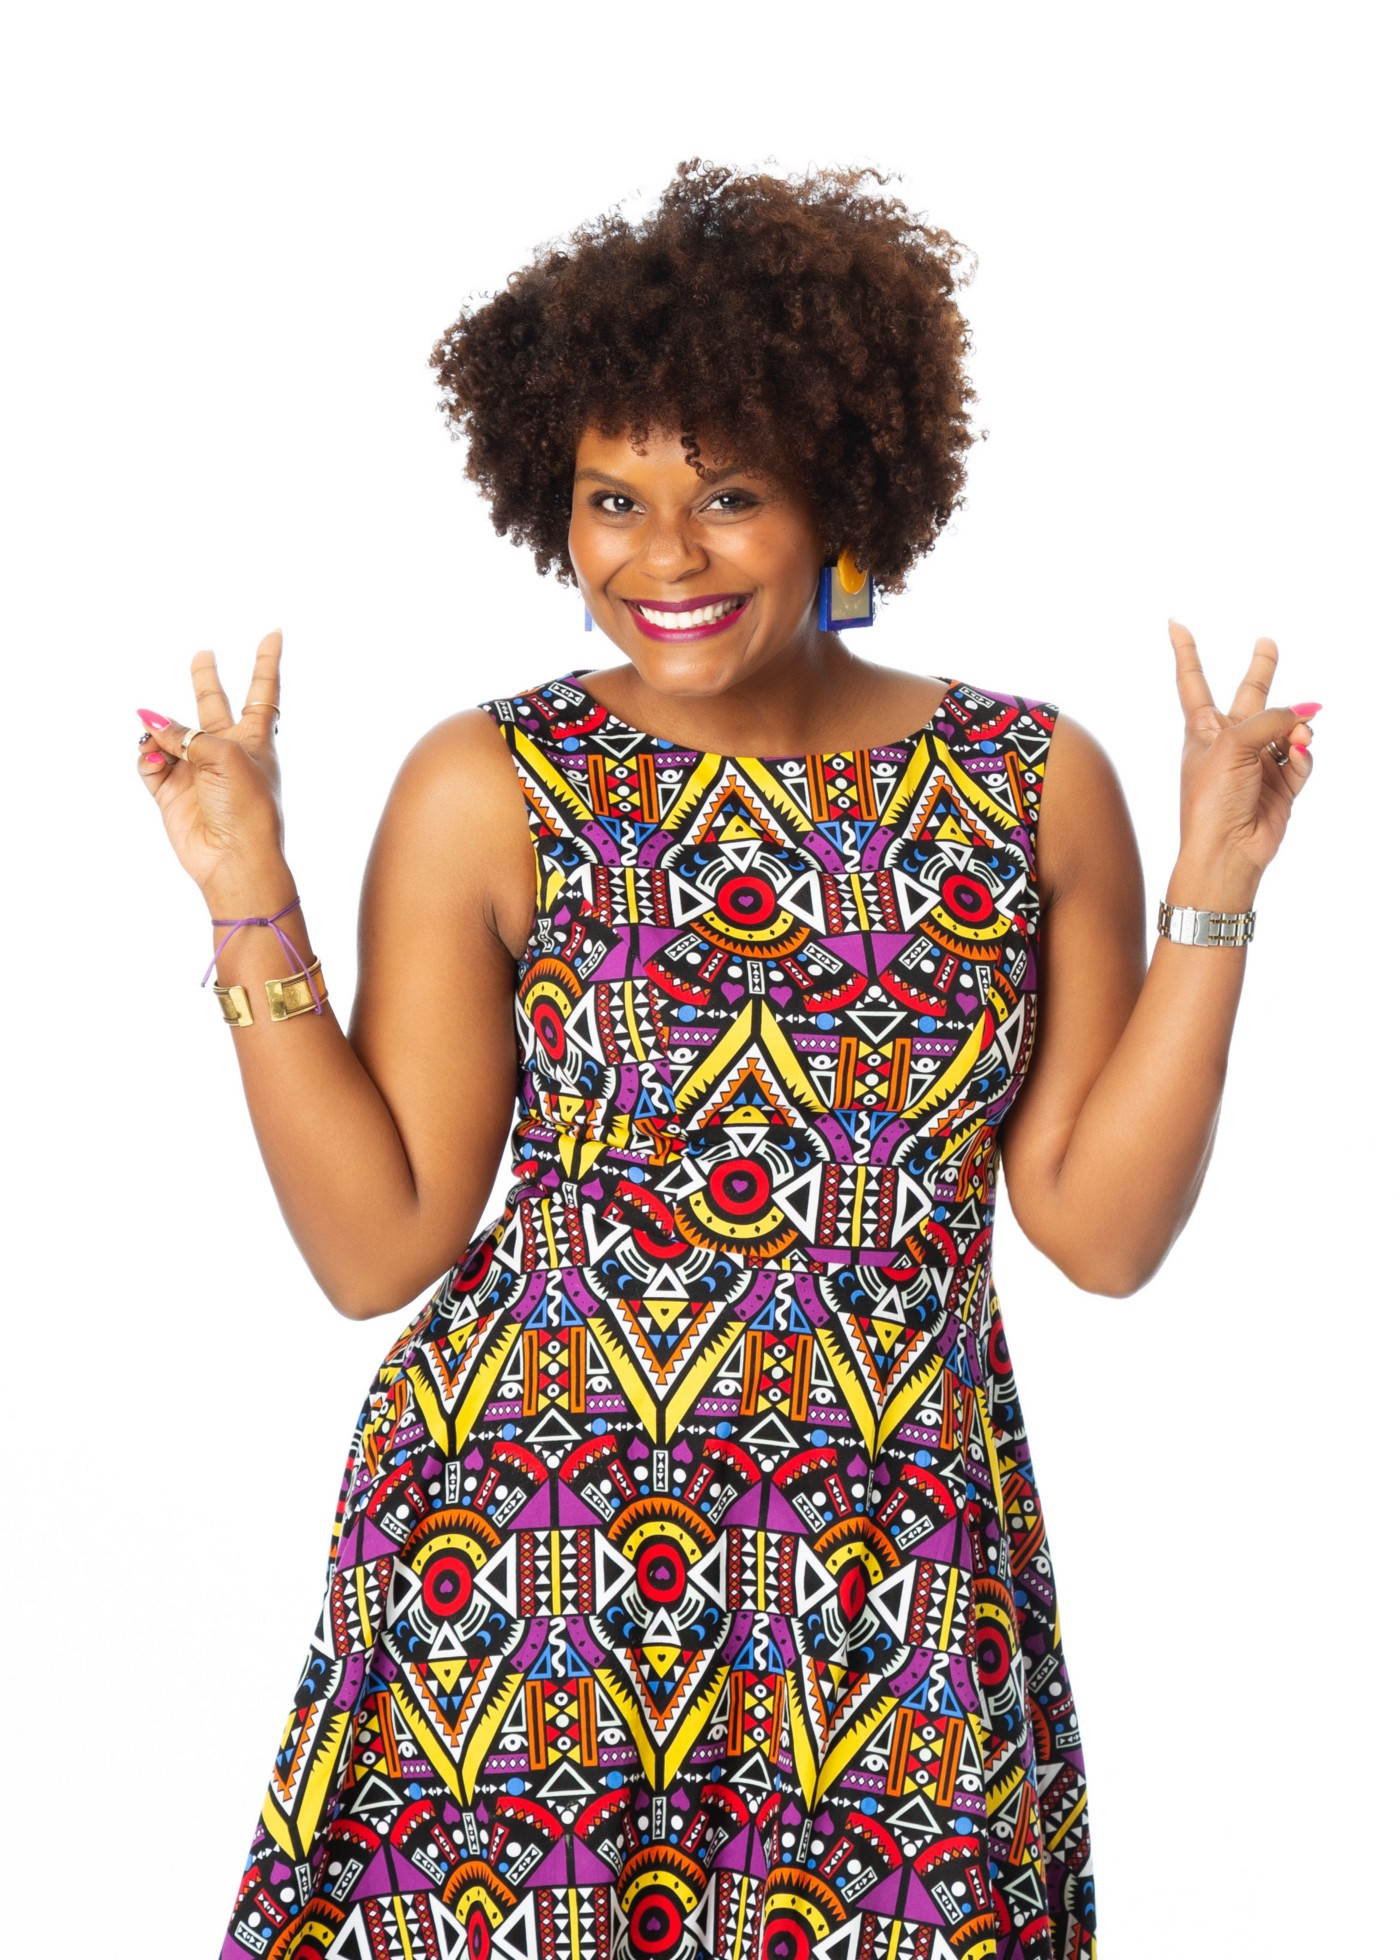 A photo of Tabitha Brown posing with peace signs.